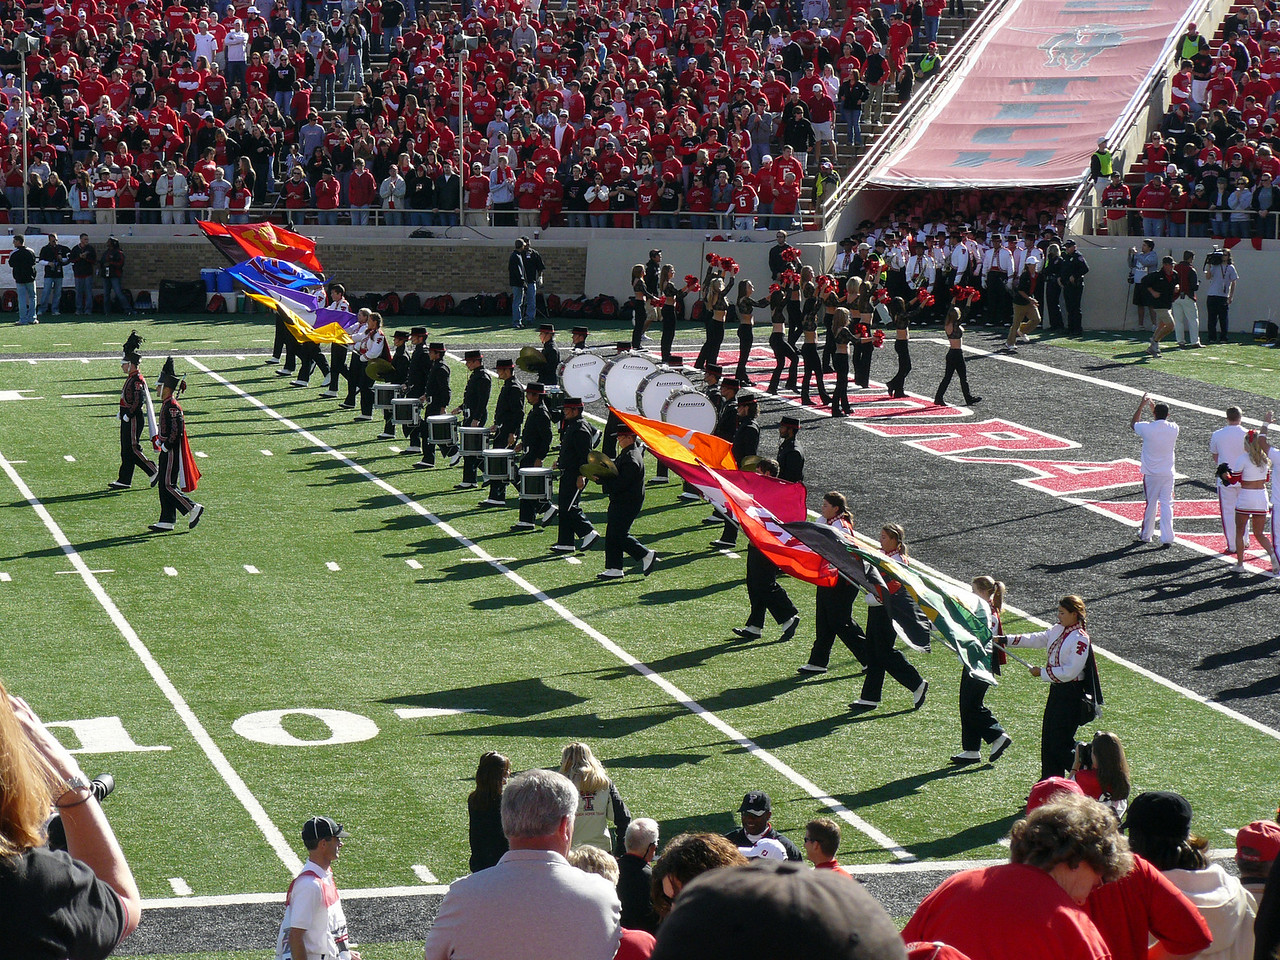 Band color guard entering the field